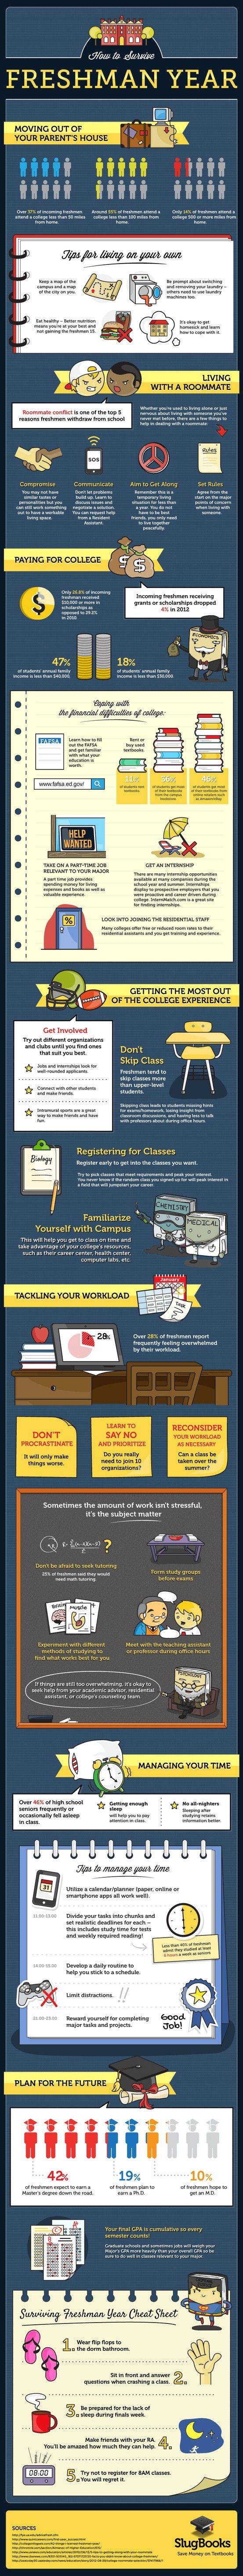 How to Survive you Freshman Year of College #financials #roommates #manageyourtime